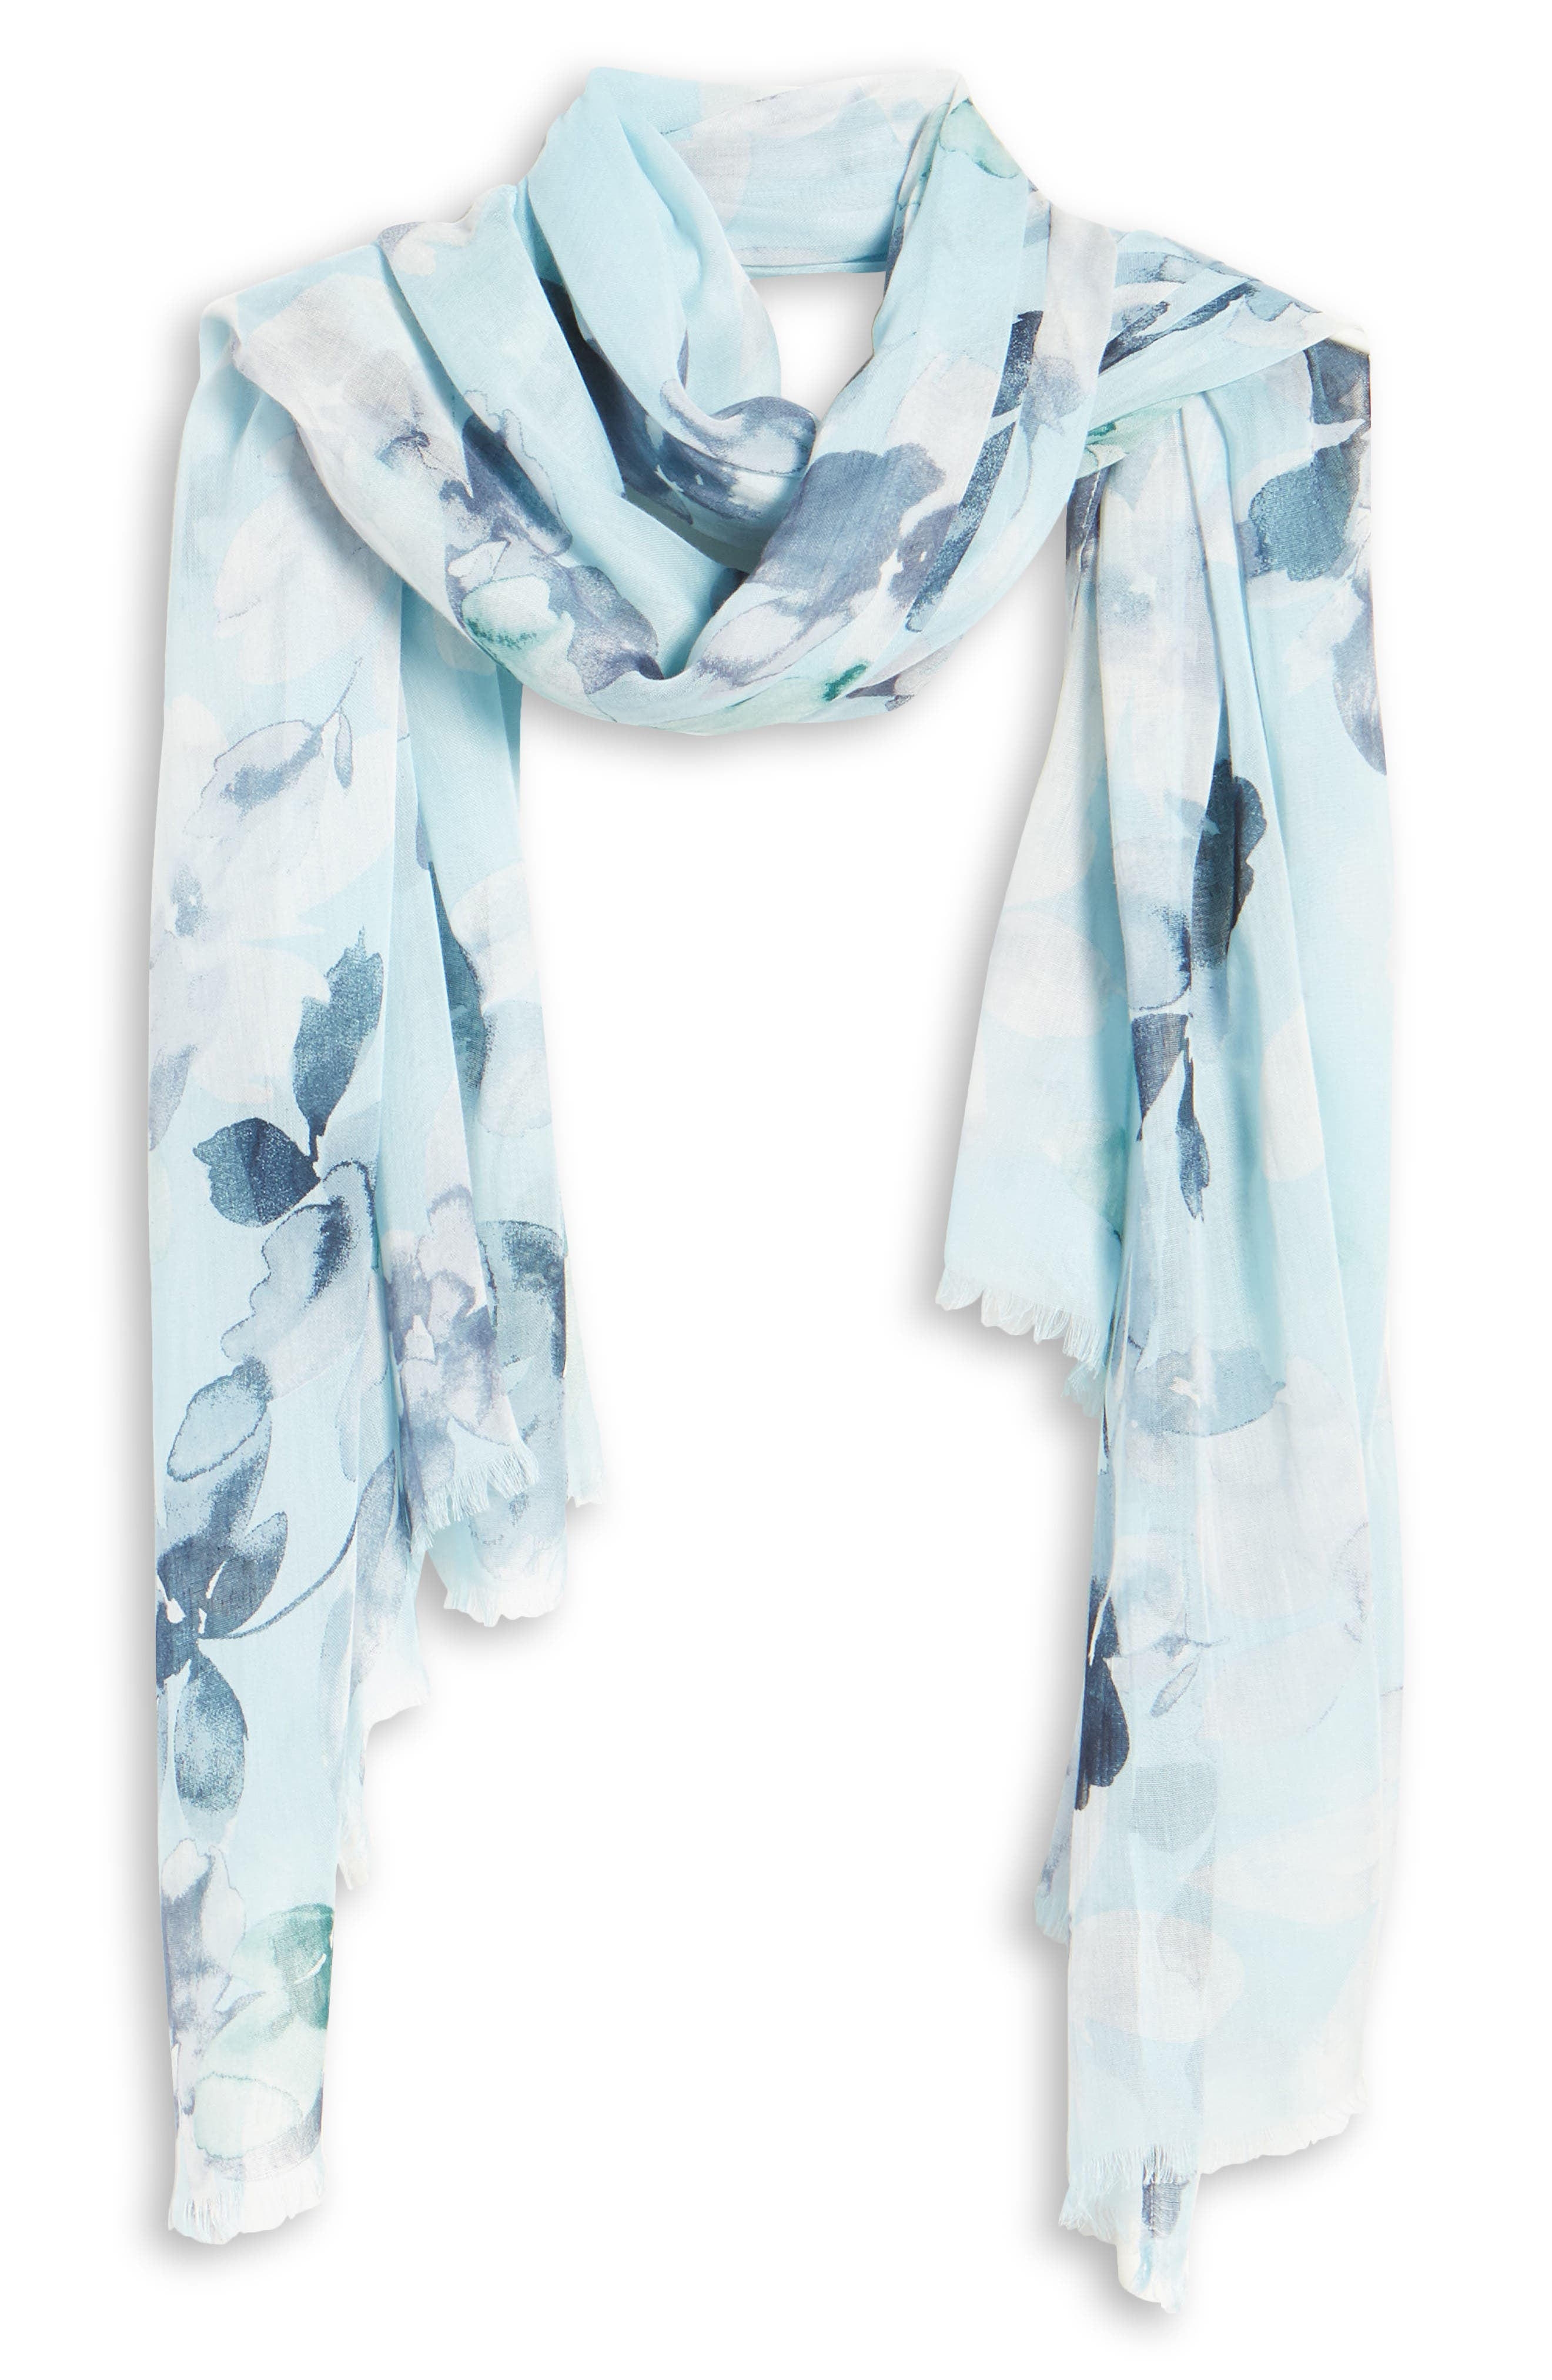 Daisy Flower Silver Metallic Scarf Glitter Shiny Blue Grey Olive Pink Coral